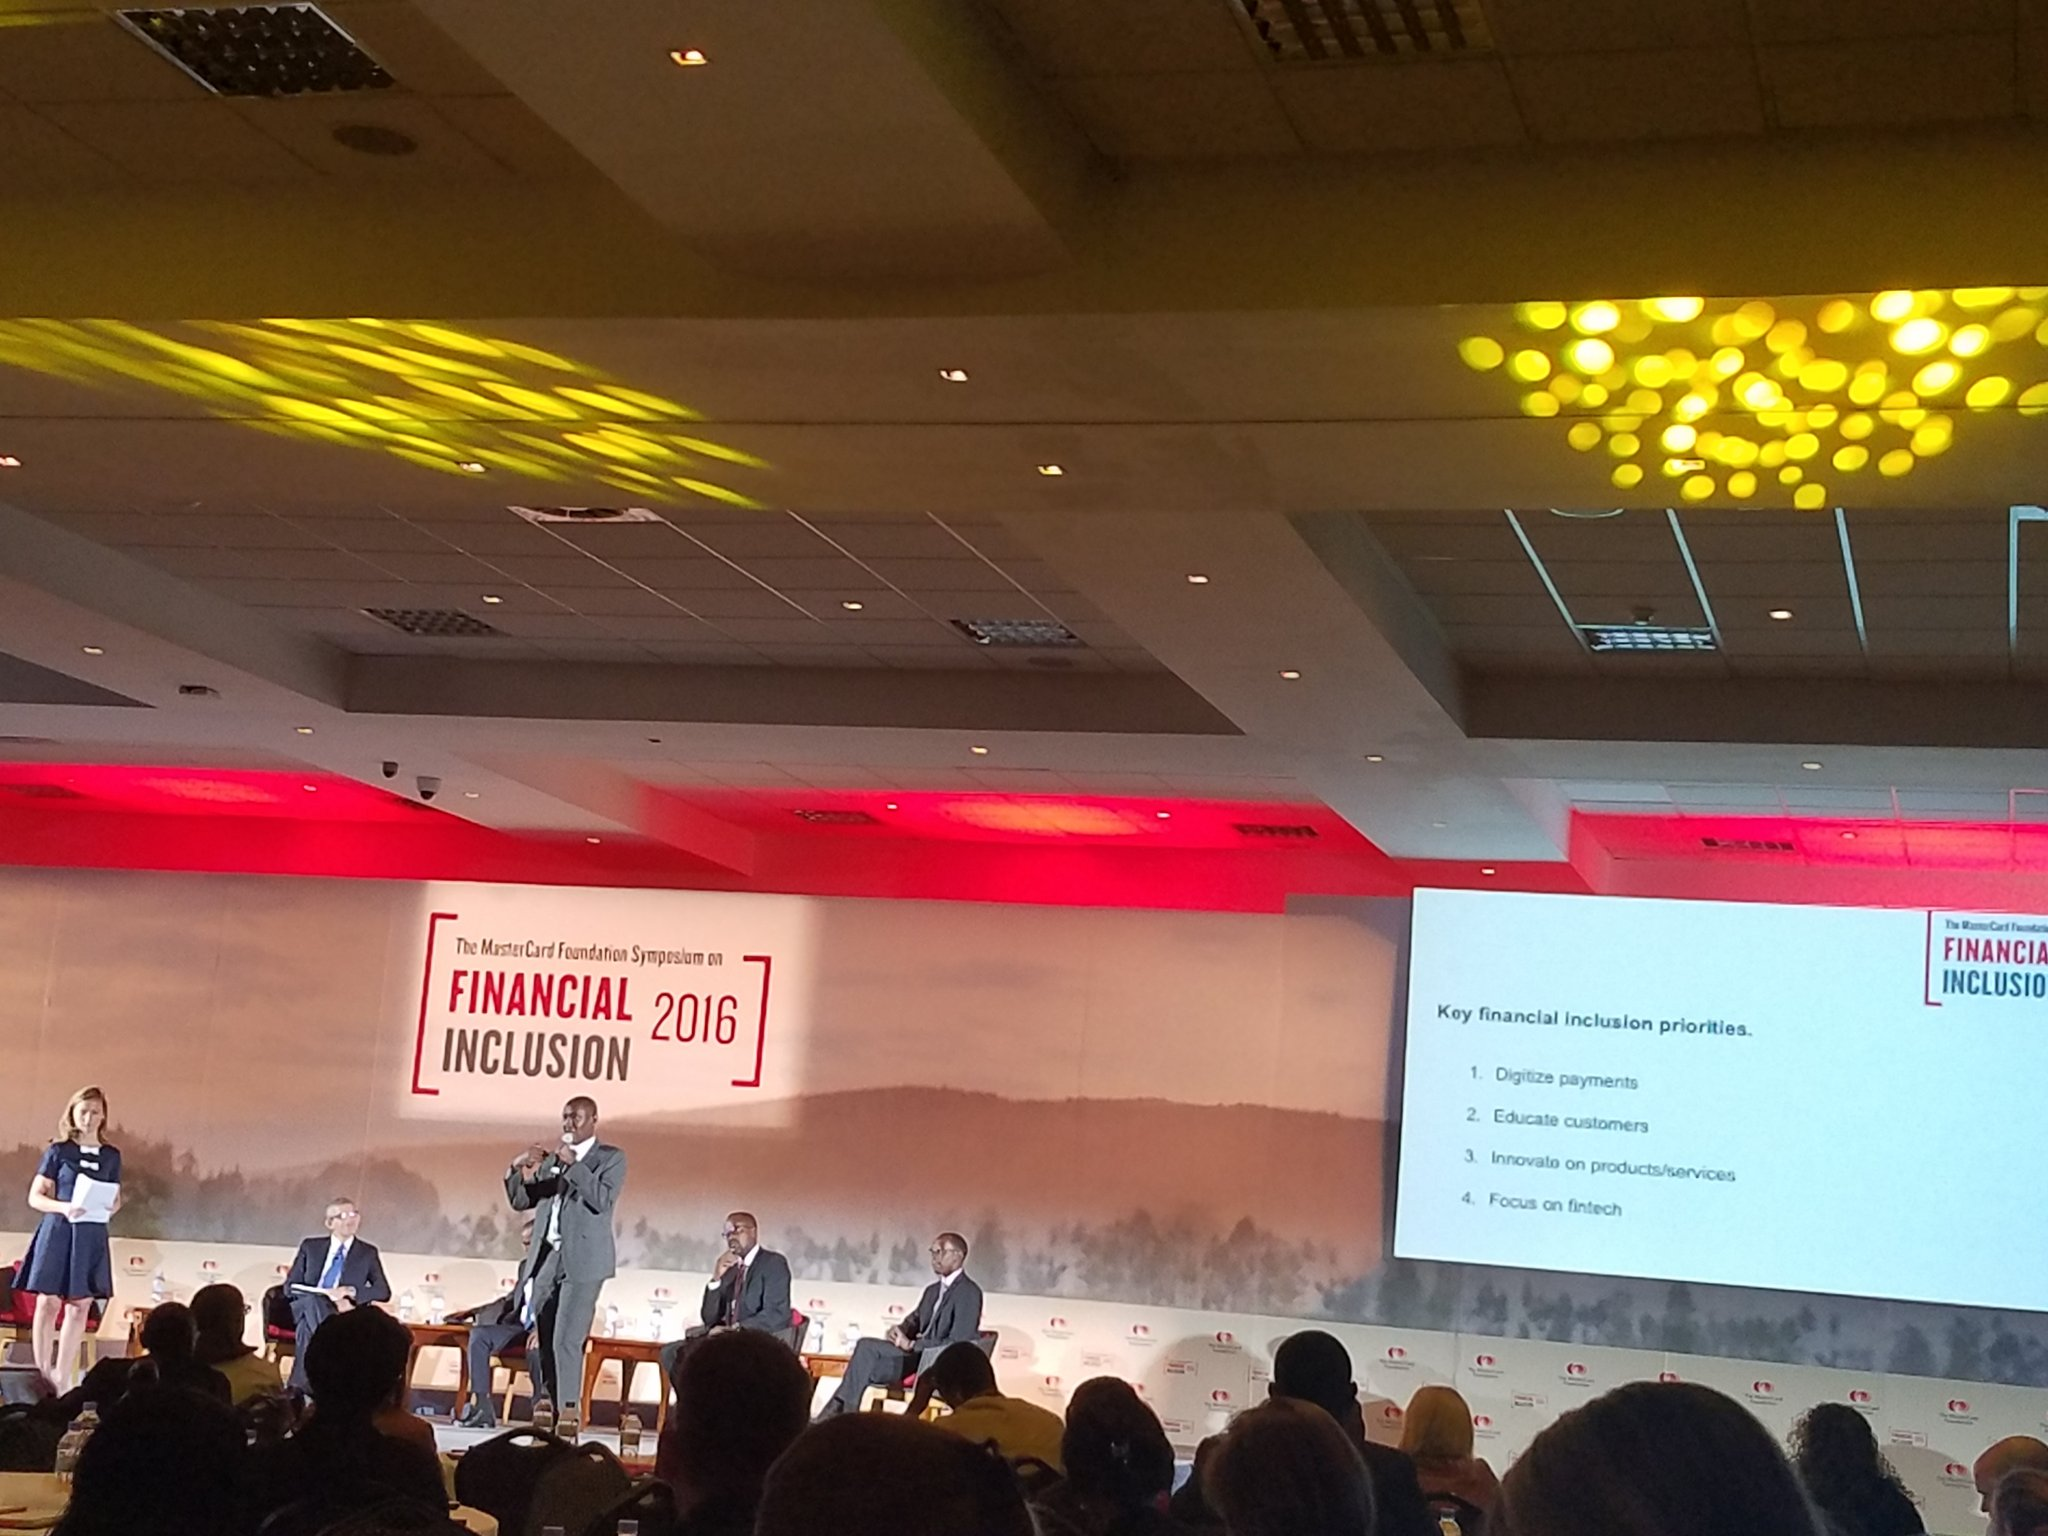 Rwanda aims at 100% financial inclusion.  1.Digitize payments 2.Educate customers 3.Innovate services/products 4.Focus on fintech #sofi2016 https://t.co/rpIpofQHXO